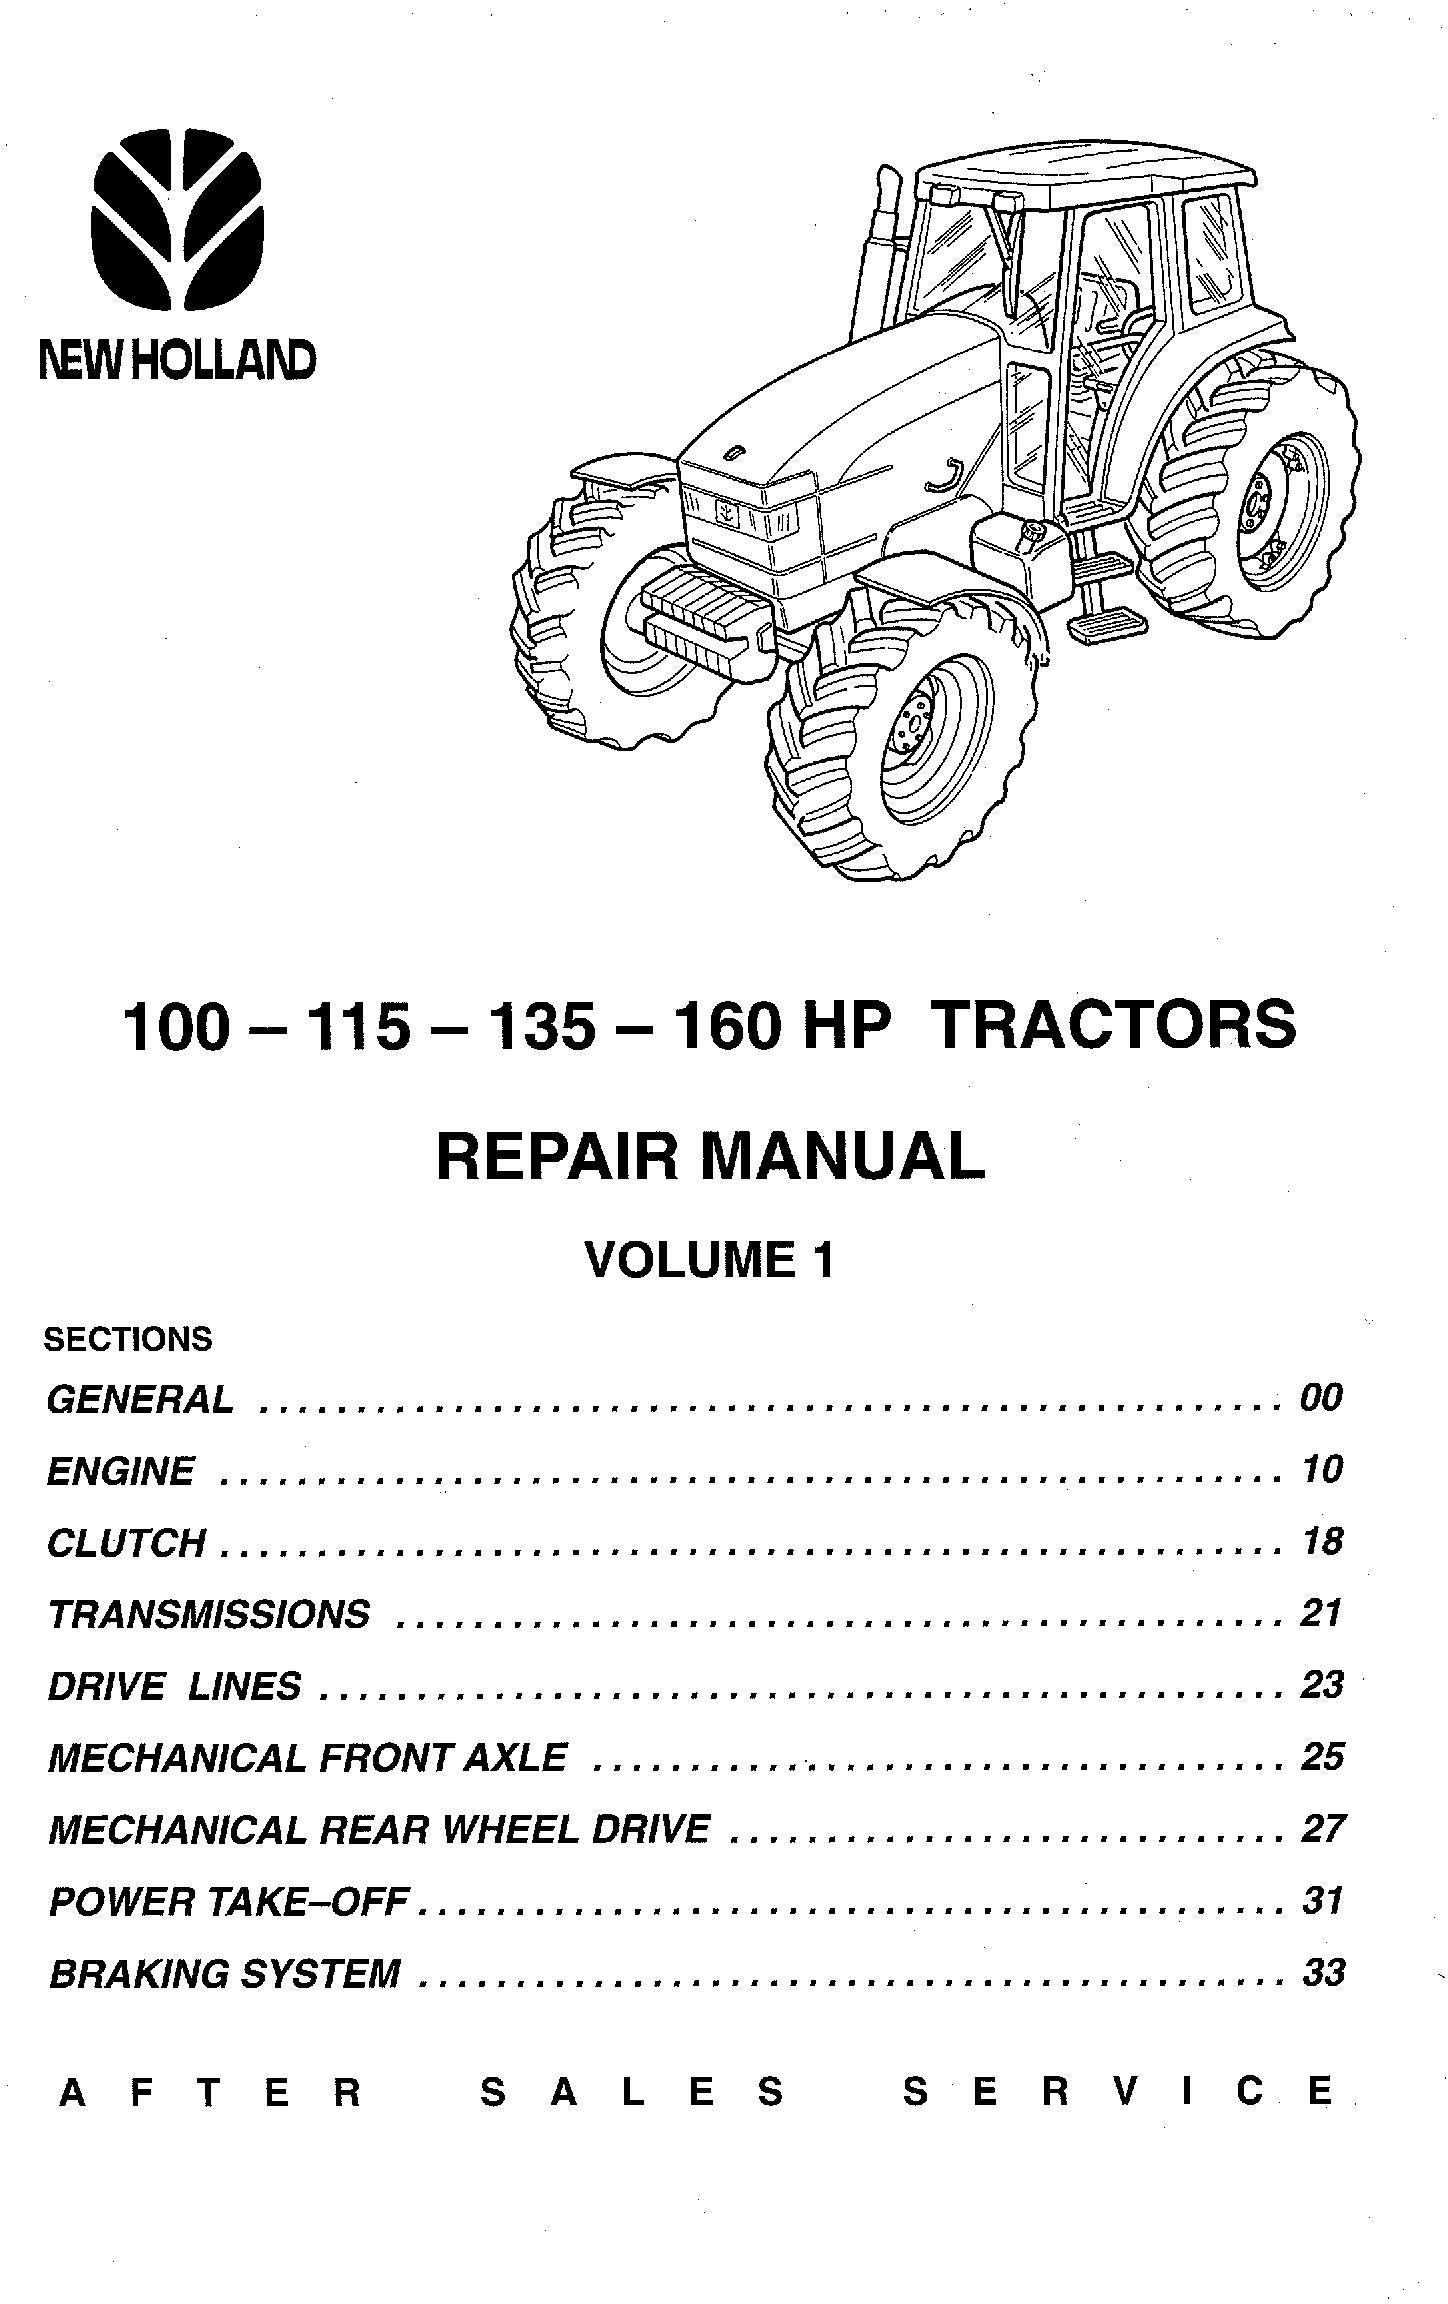 New Holland 100 HP, 115 HP, 135 HP, 160 HP tractors Service Manual - 19534